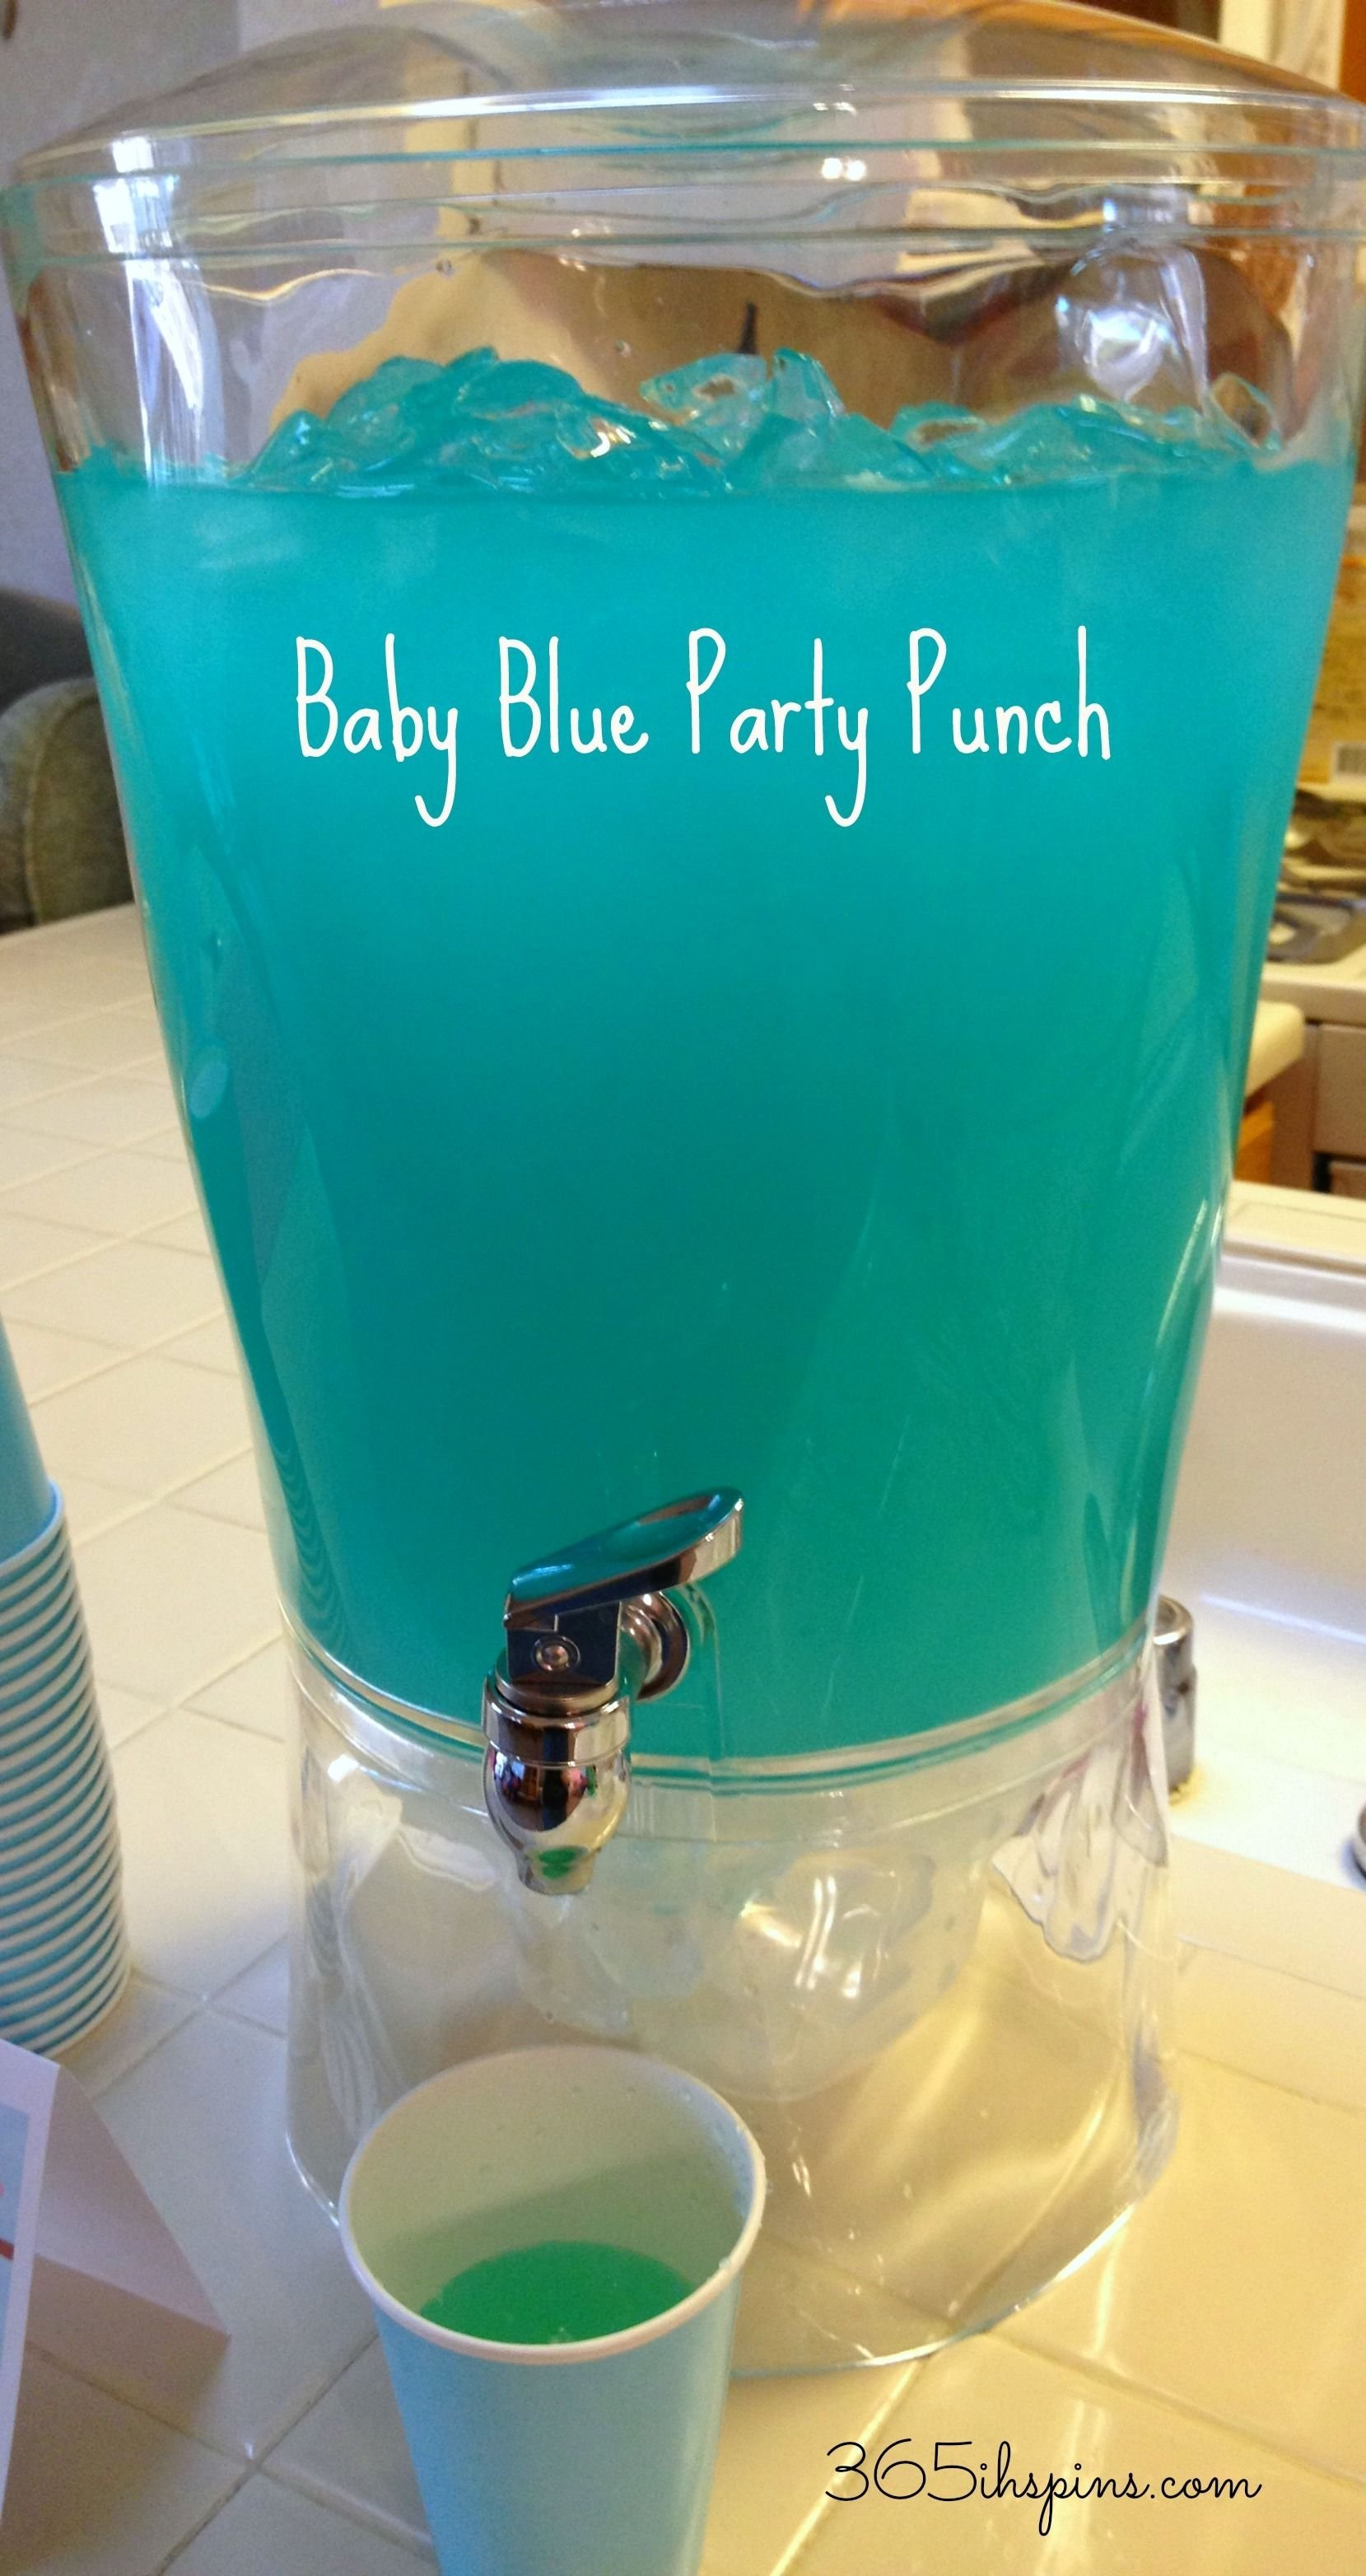 blue punch for baby shower | day 291: pretty pink punch & baby blue